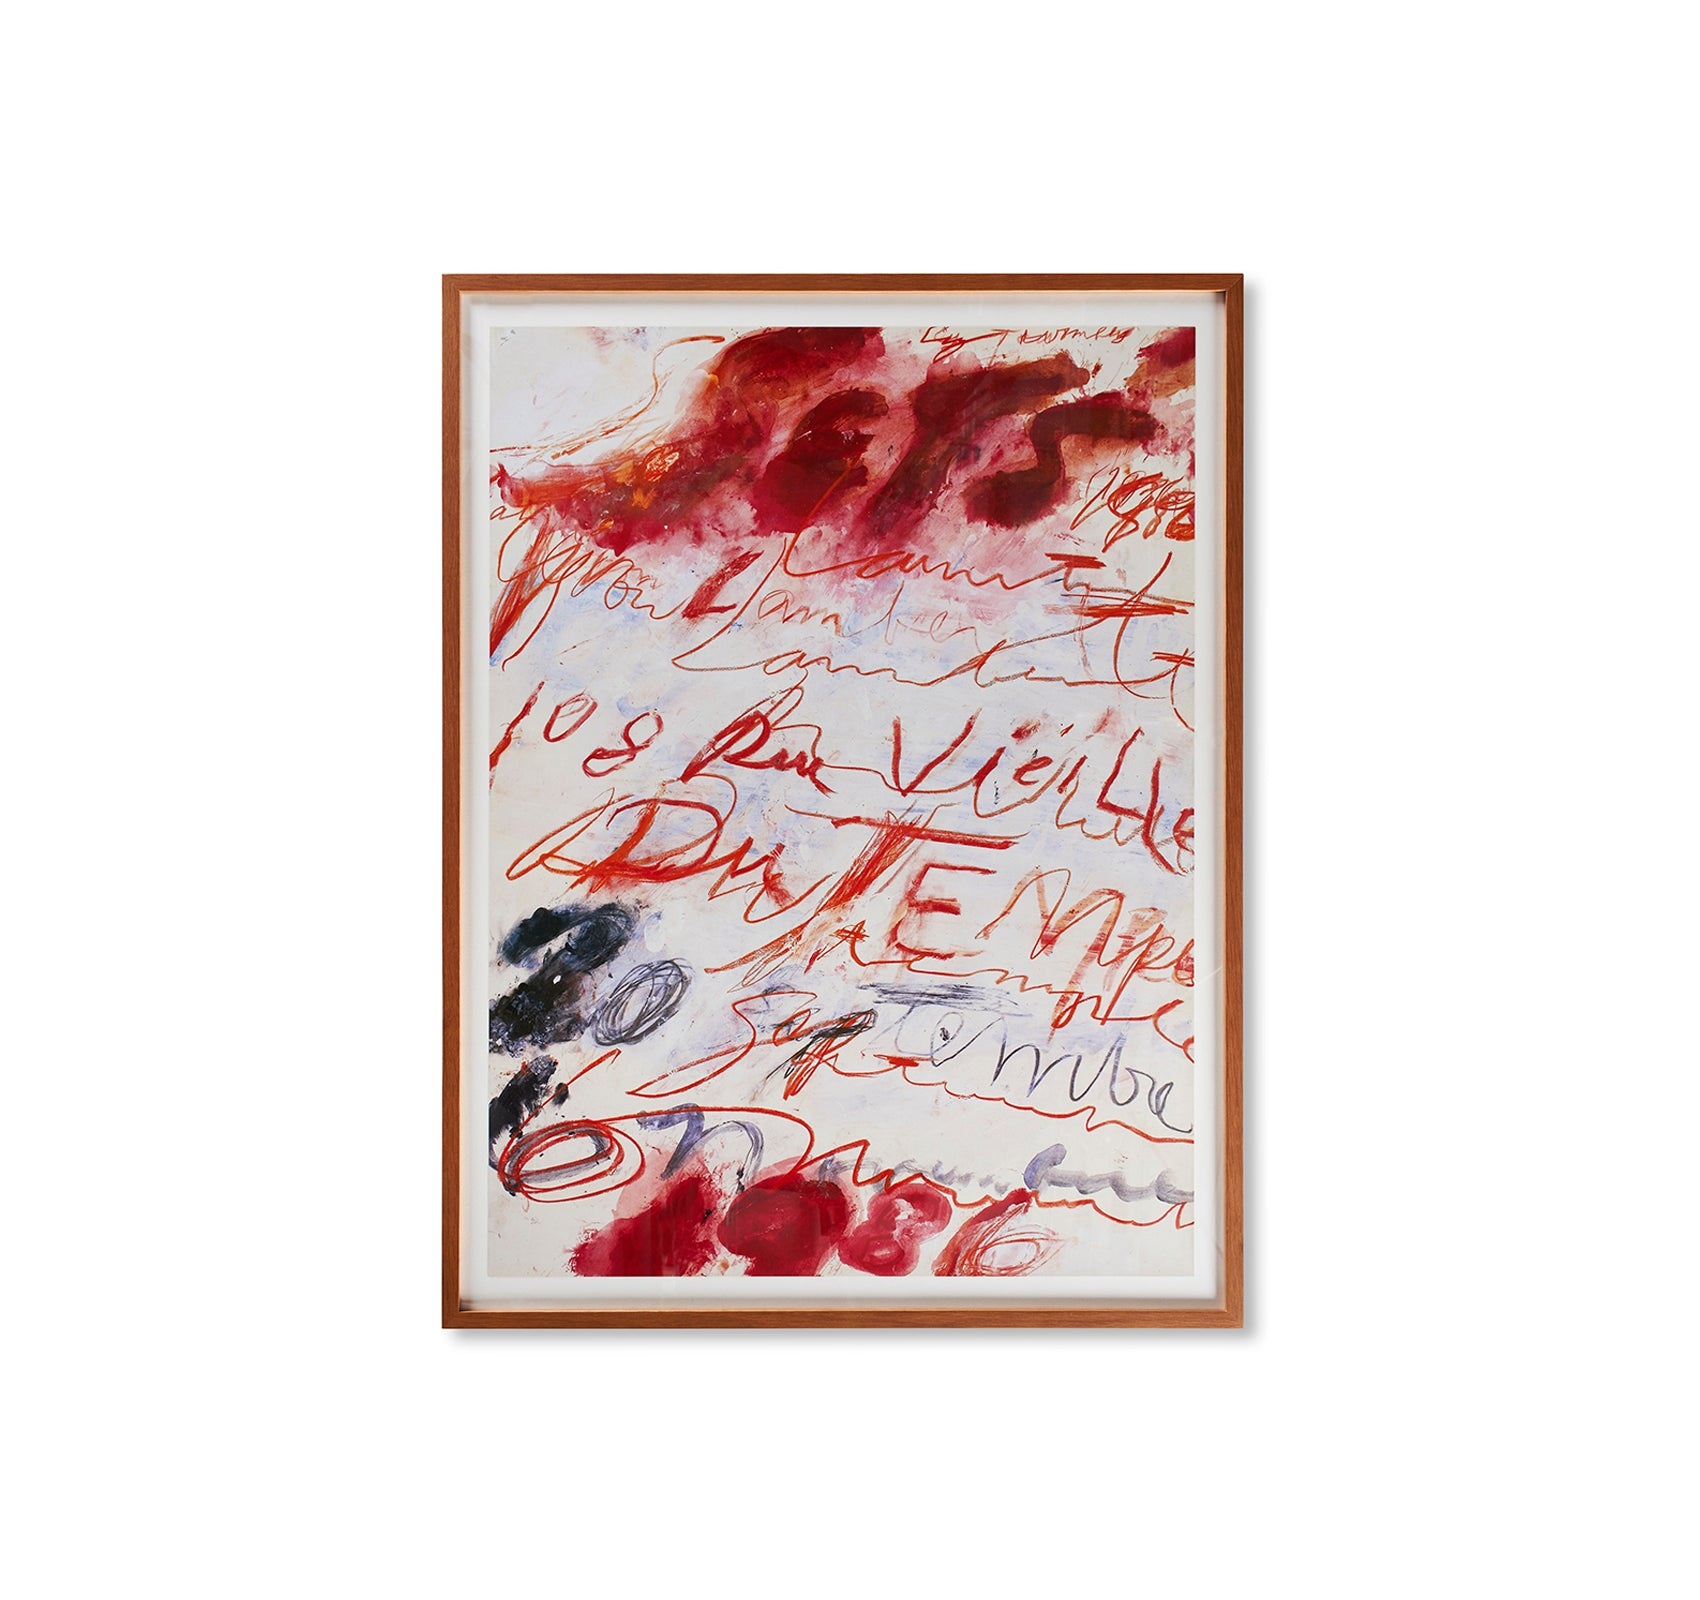 PRINT (1986) by Cy Twombly